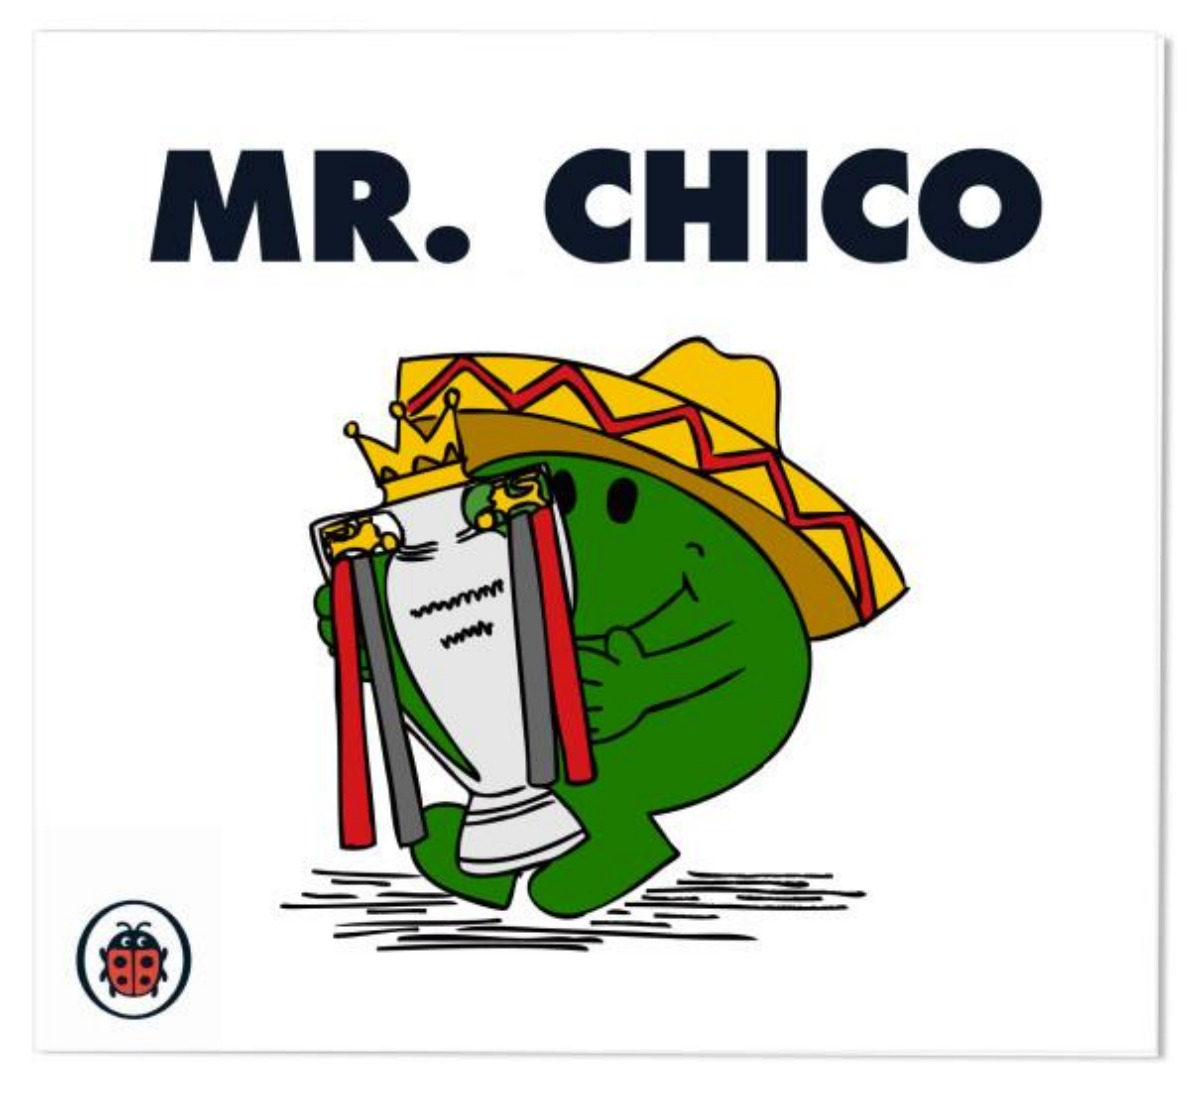 Introducing… Mr Chico